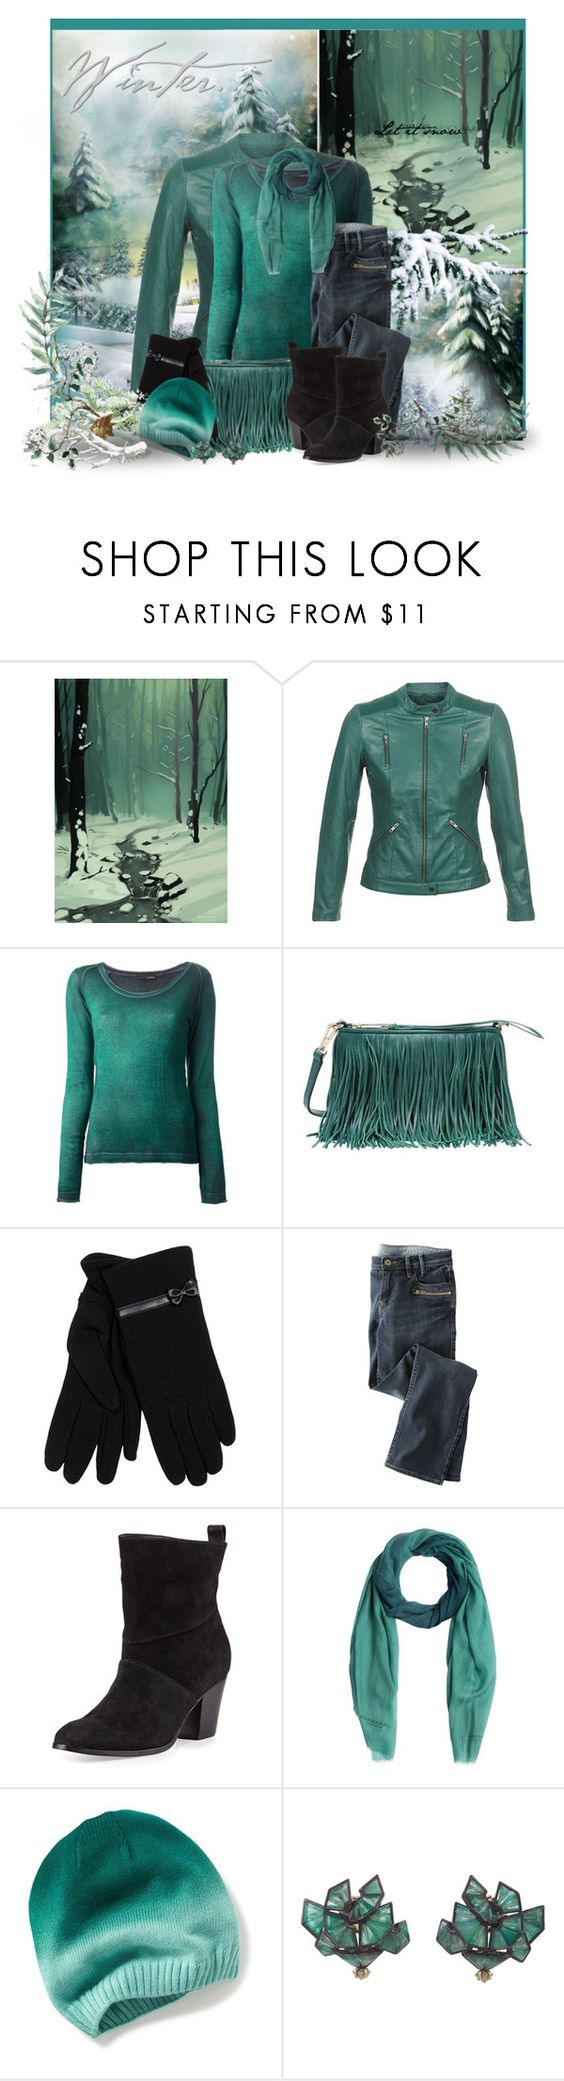 """""""Teal Love"""" by jackie22 ❤ liked on Polyvore featuring Naf Naf, Avant Toi, Rebecca Minkoff, Isotoner, Wrap, Bernardo, Burberry and Nak Armstrong"""